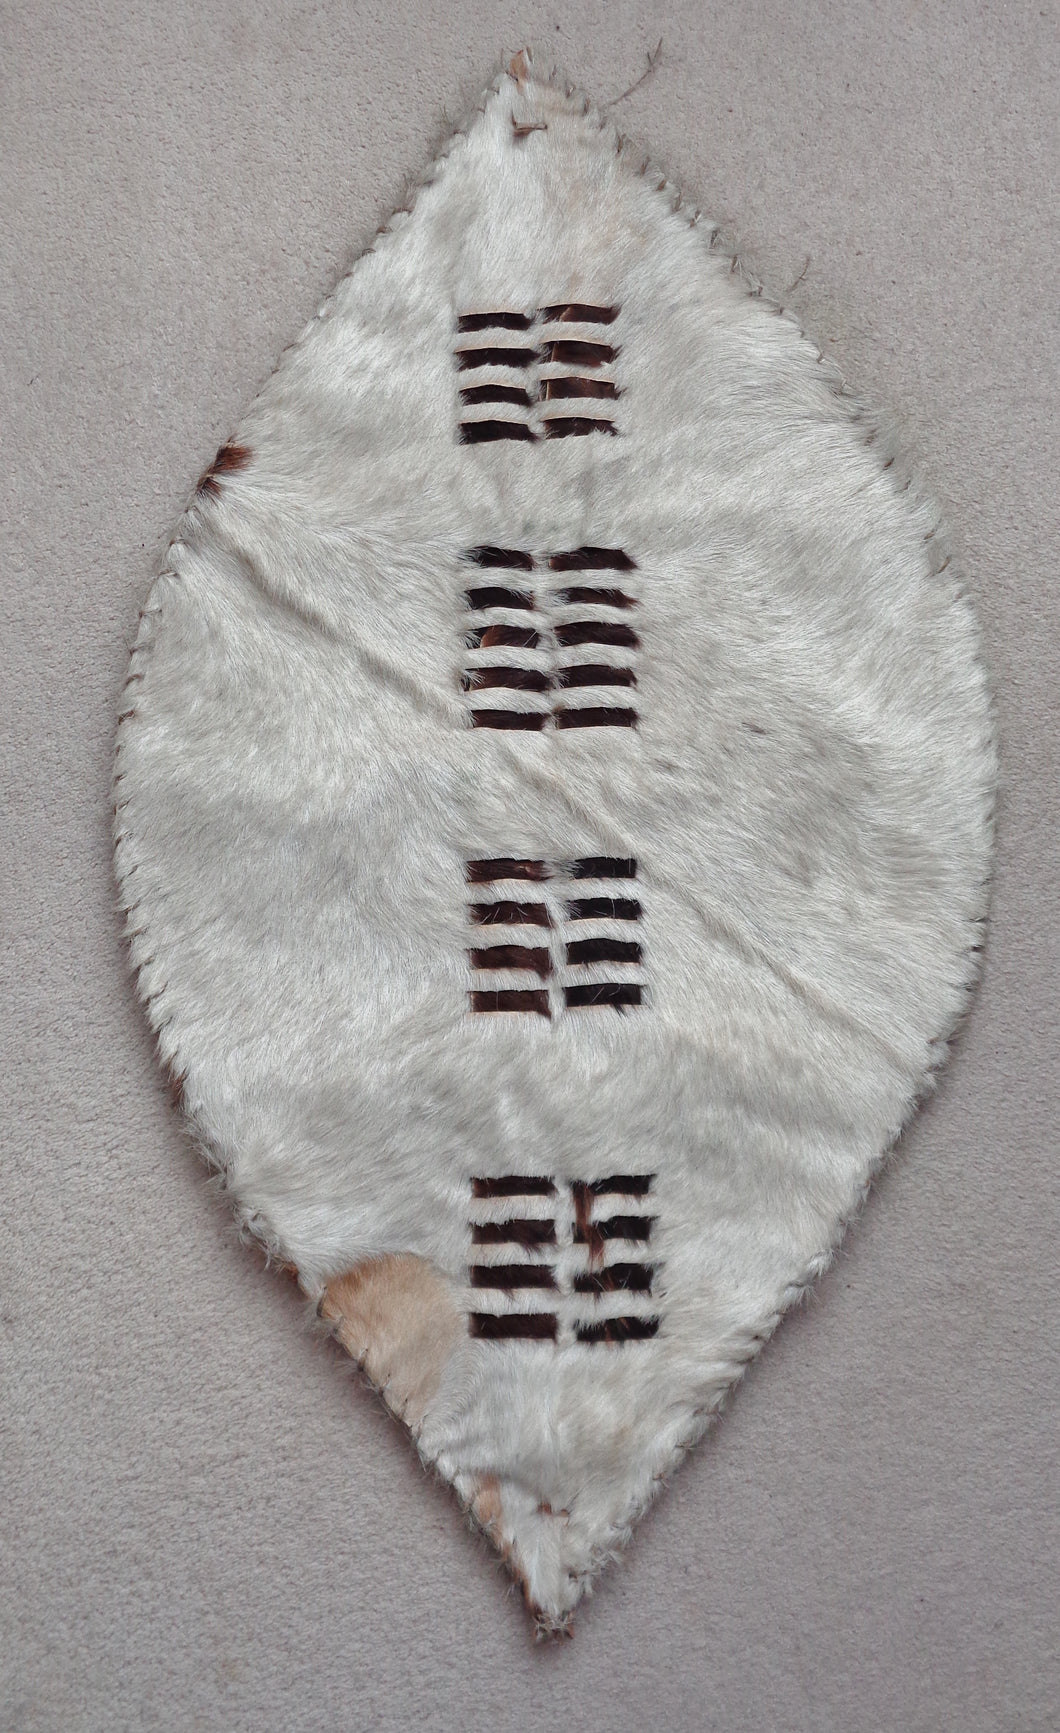 DISPLAY PIECE IN THE SHAPE OF A ZULU SHIELD